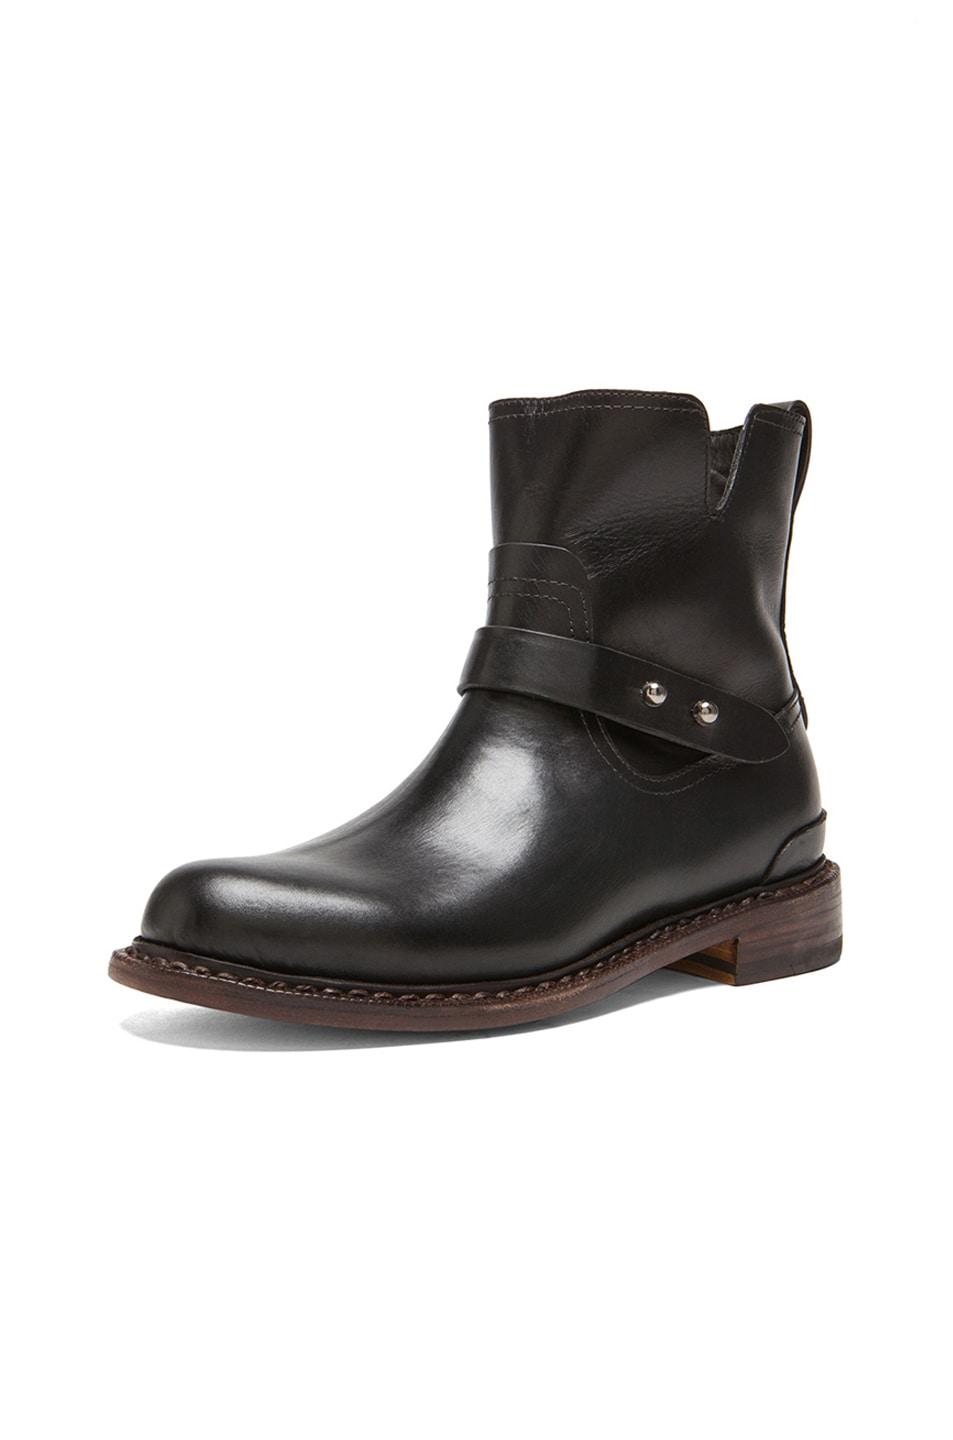 Image 2 of Rag & Bone Ashford New Moto Leather Boots in Black